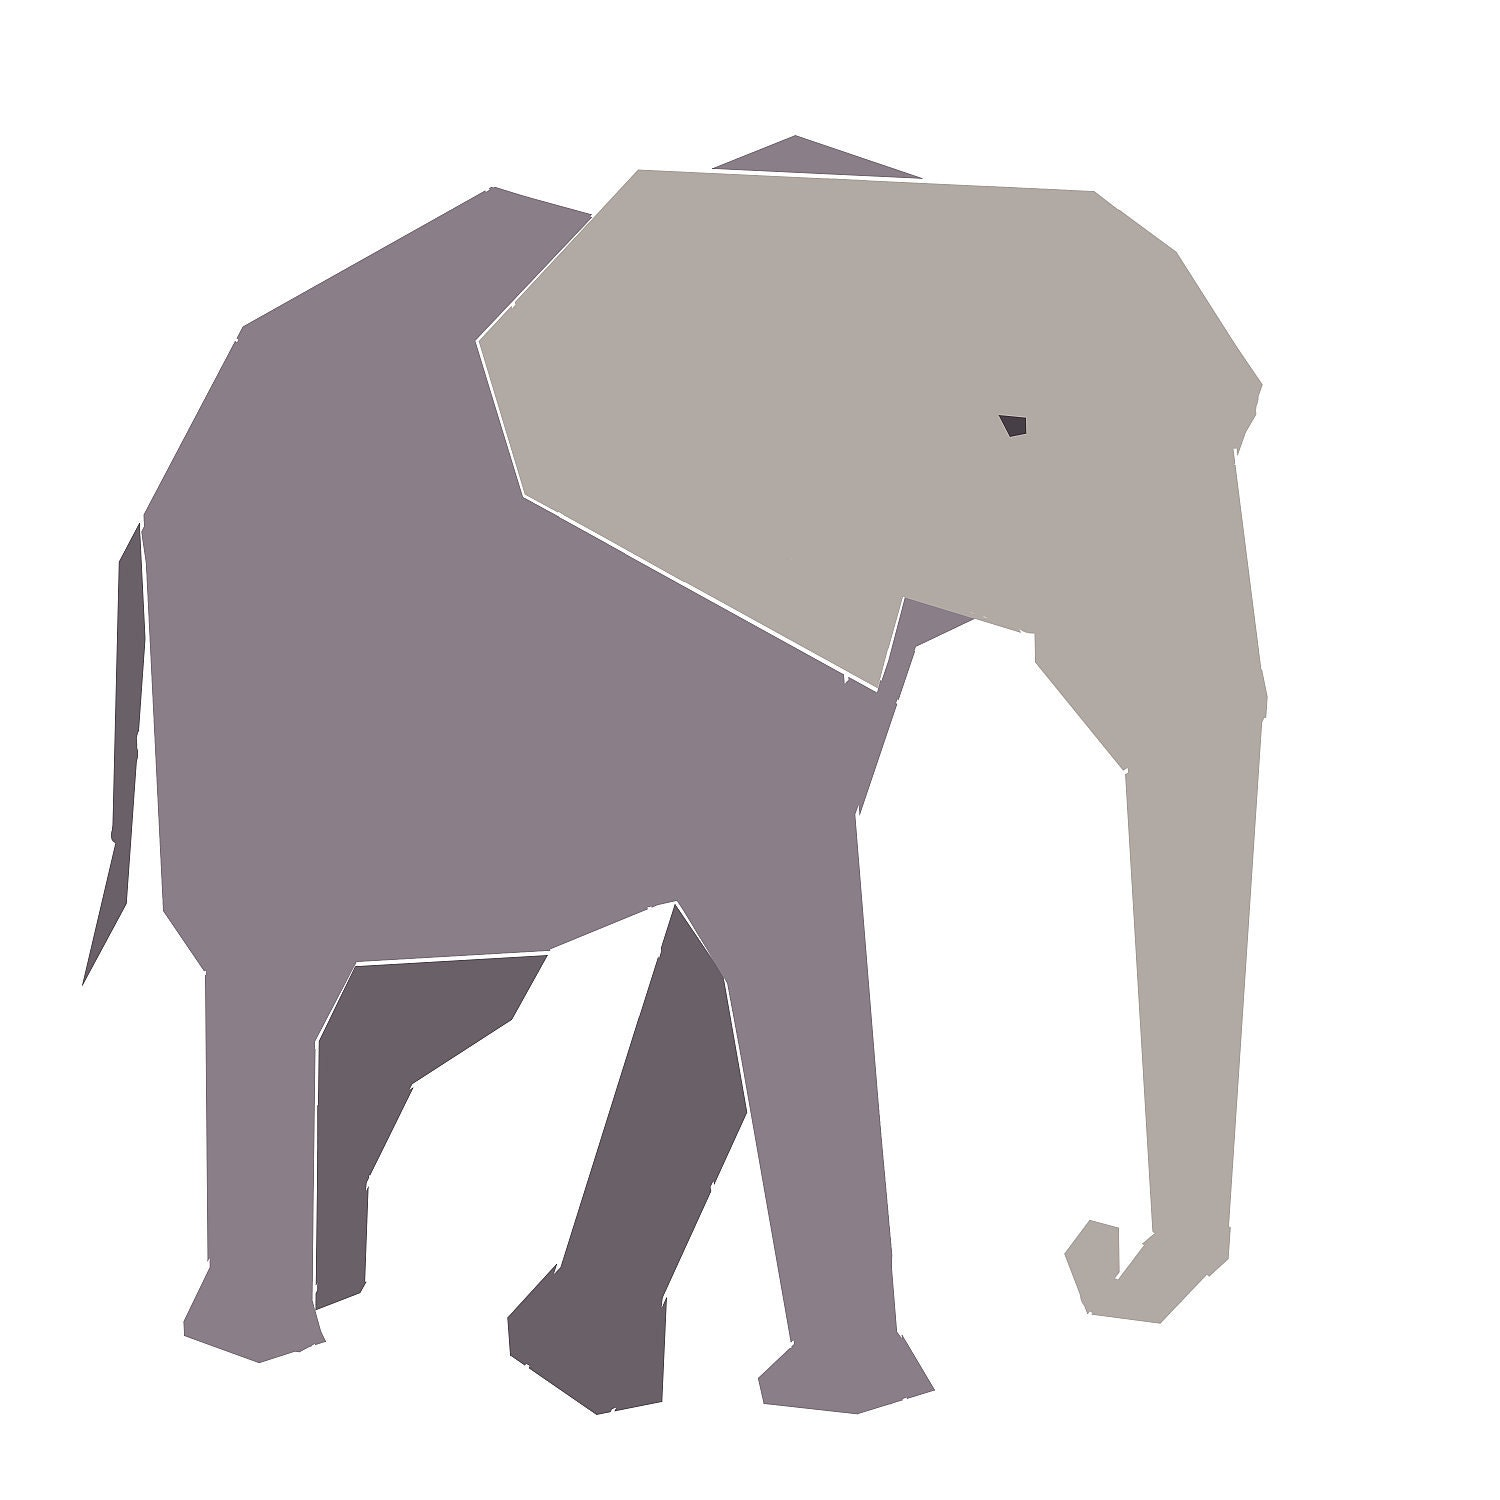 Essay on the elephant